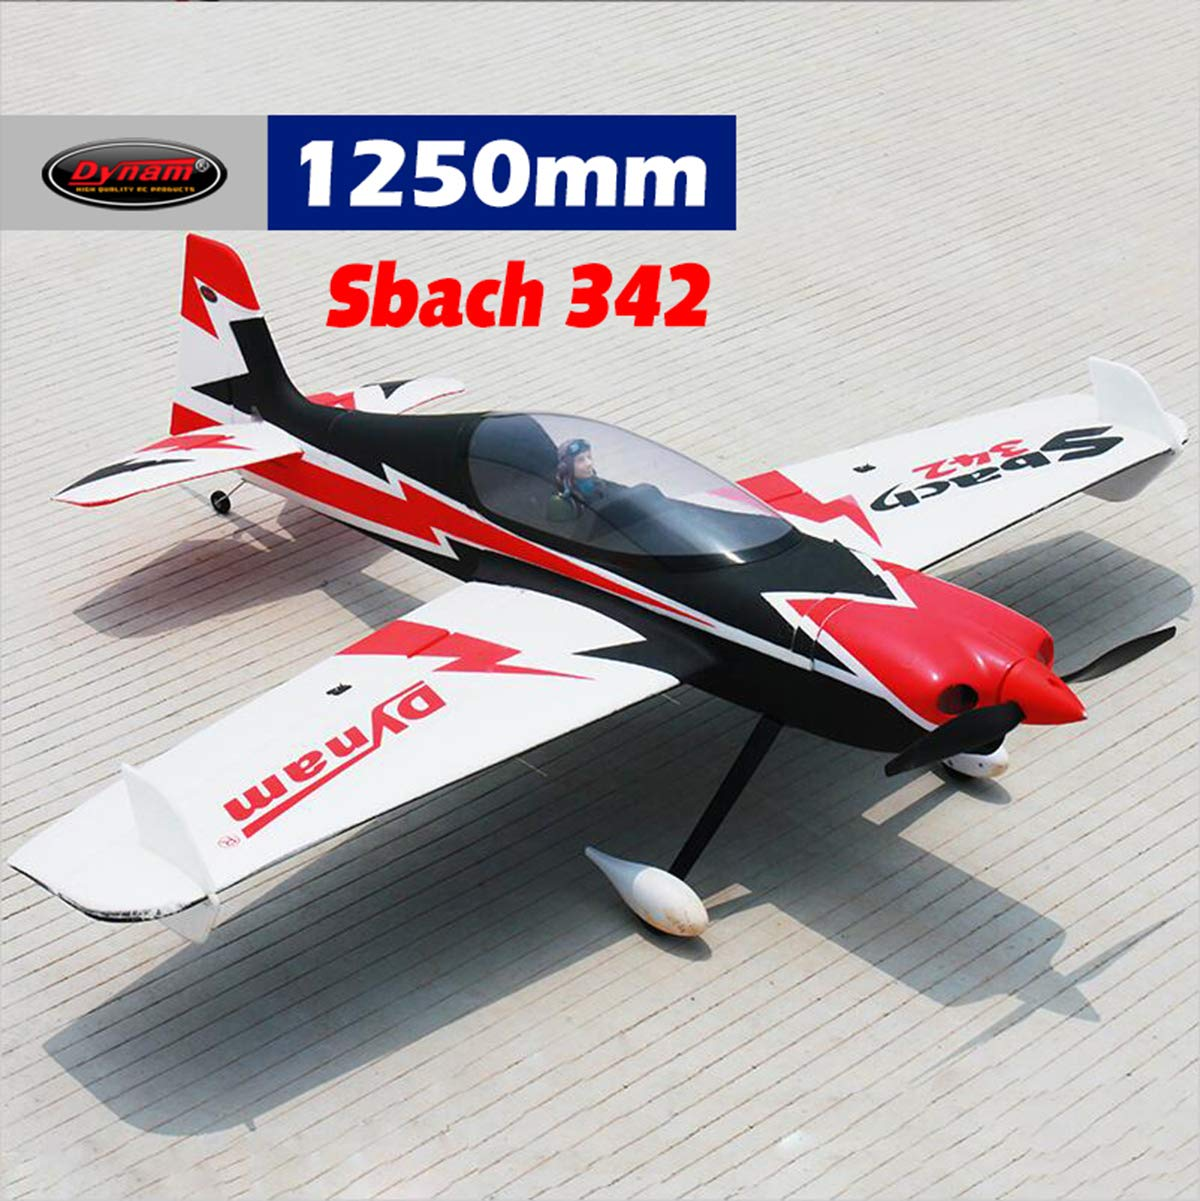 BNP Dynam RC Airplane Sbach 342 1250mm Wingspan  BNP